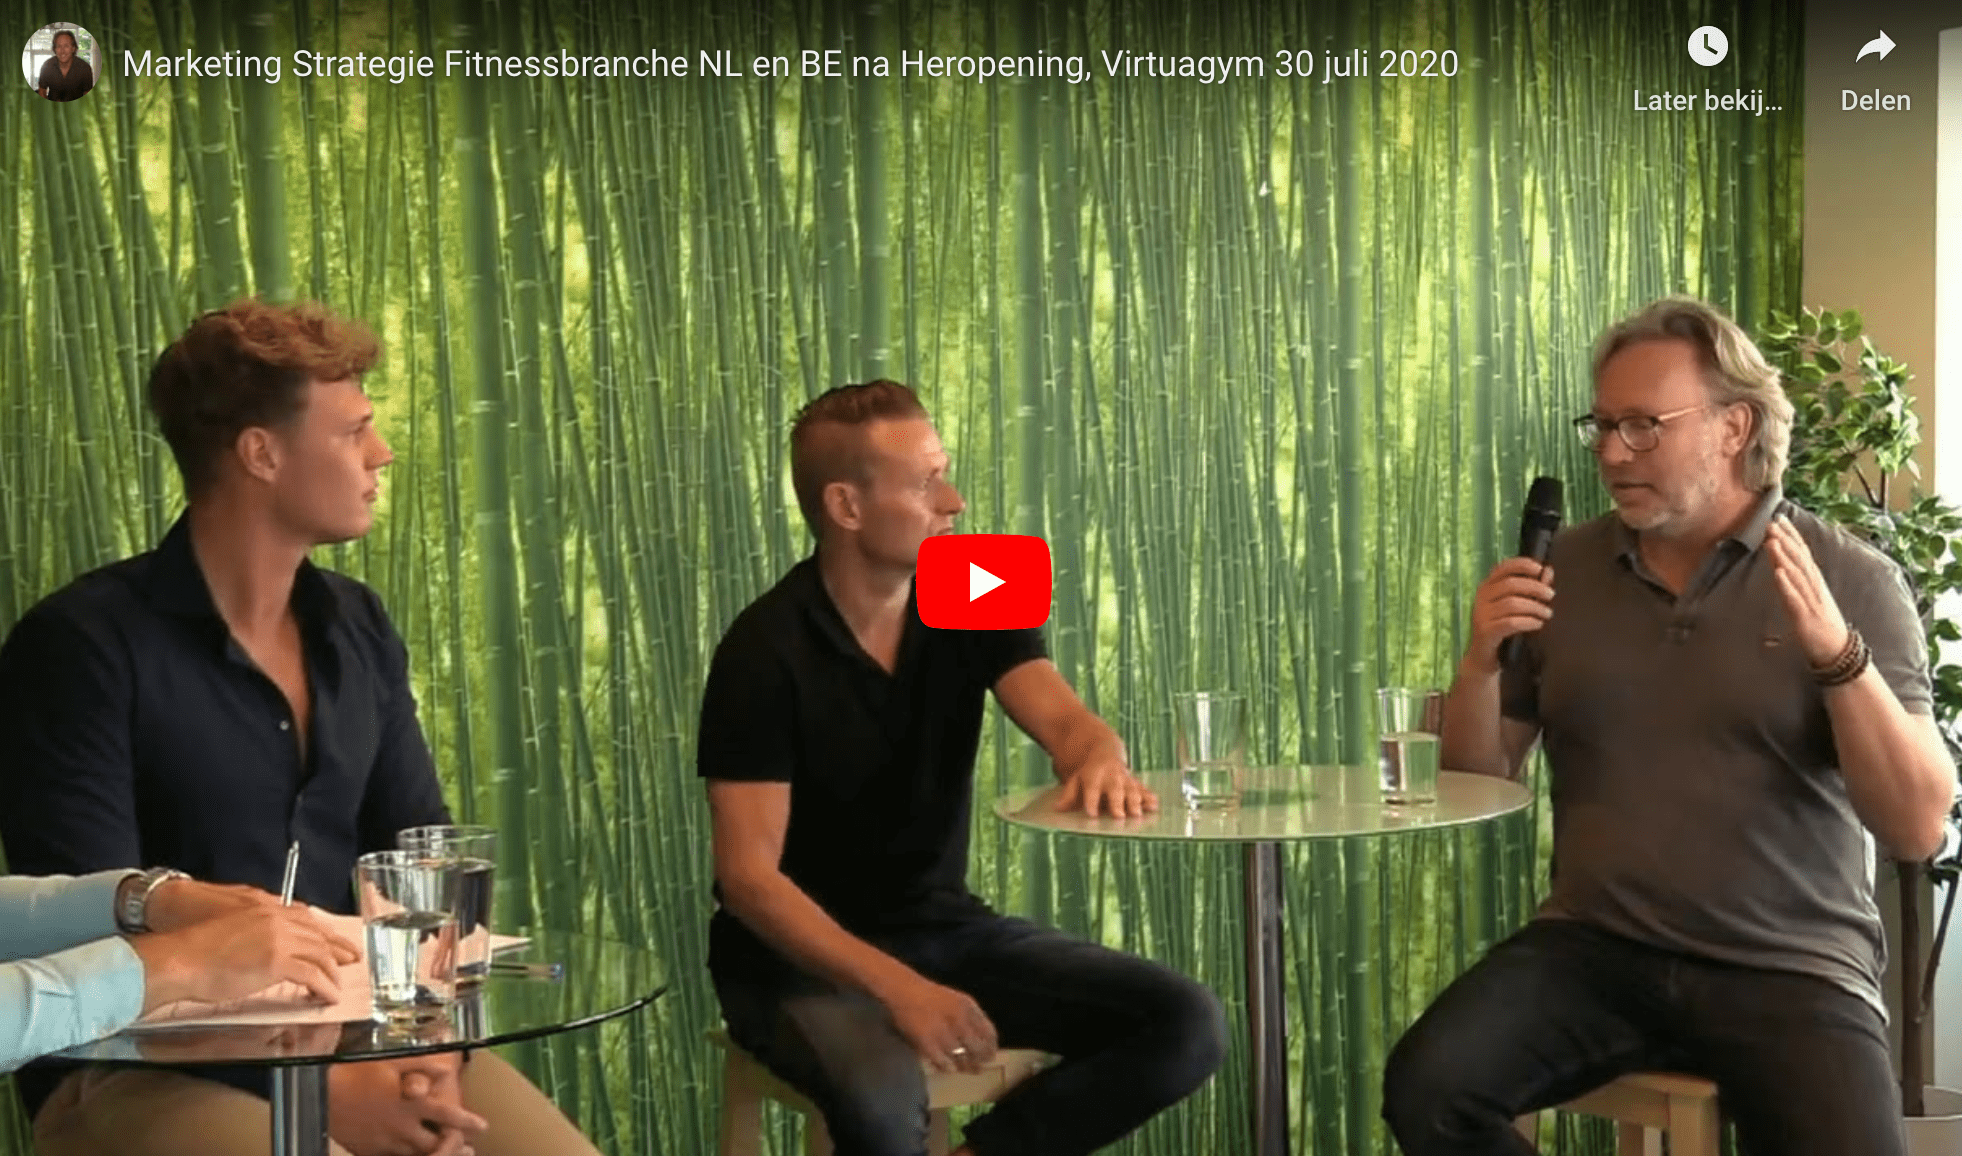 Replay video: 1e Virtuagym Lunch en Learn Webinar over Marketing in de fitnessbranche 2020